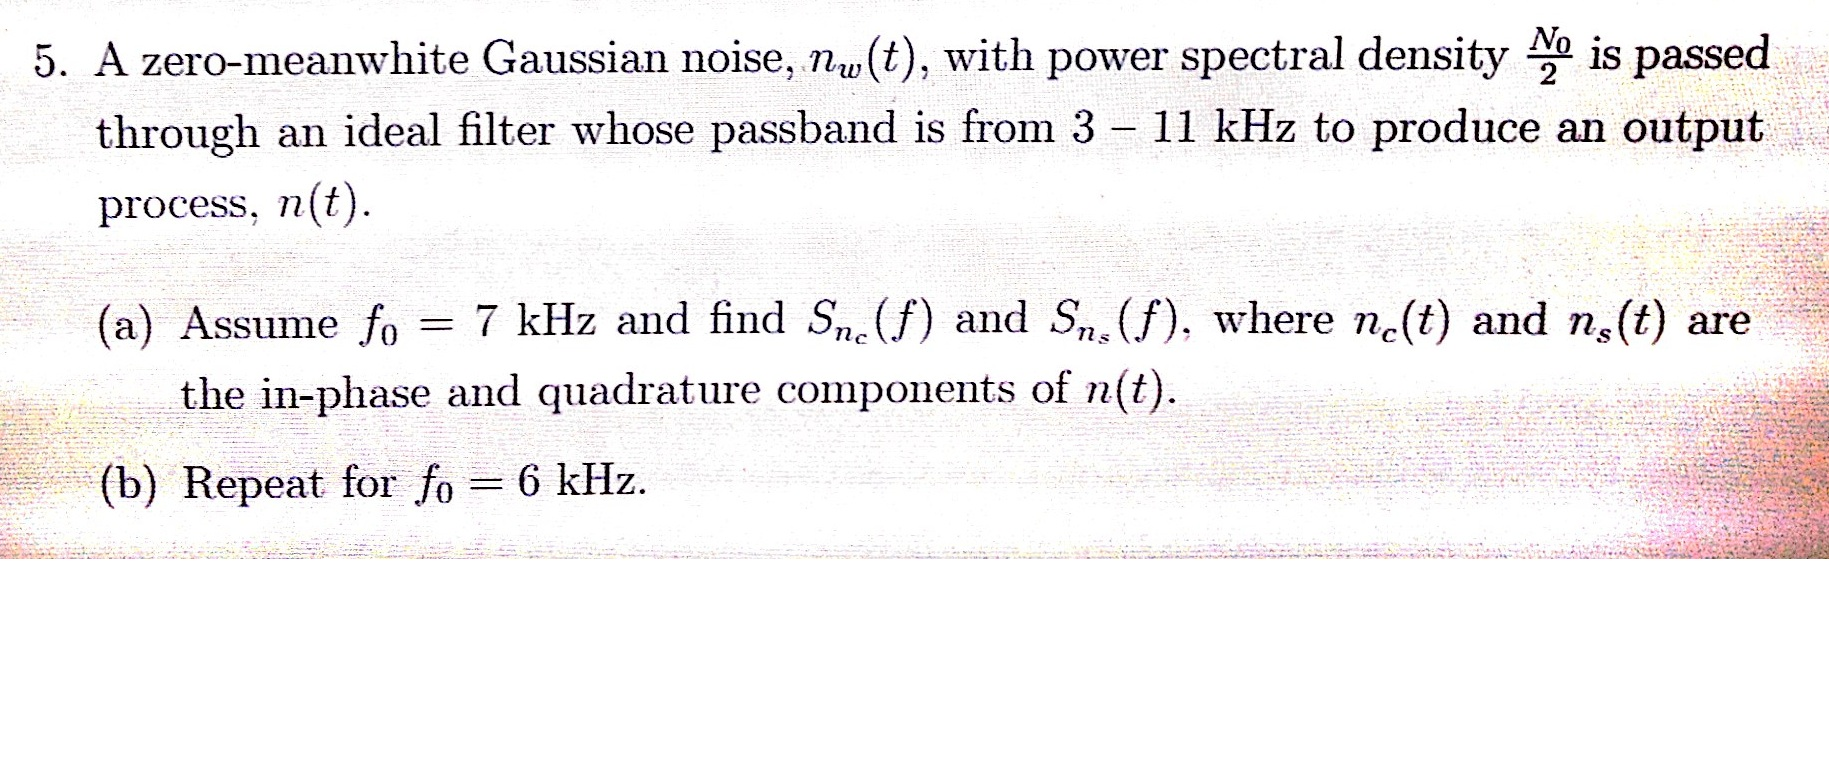 A zero-meanwhite Gaussian noise, n omega (t), with